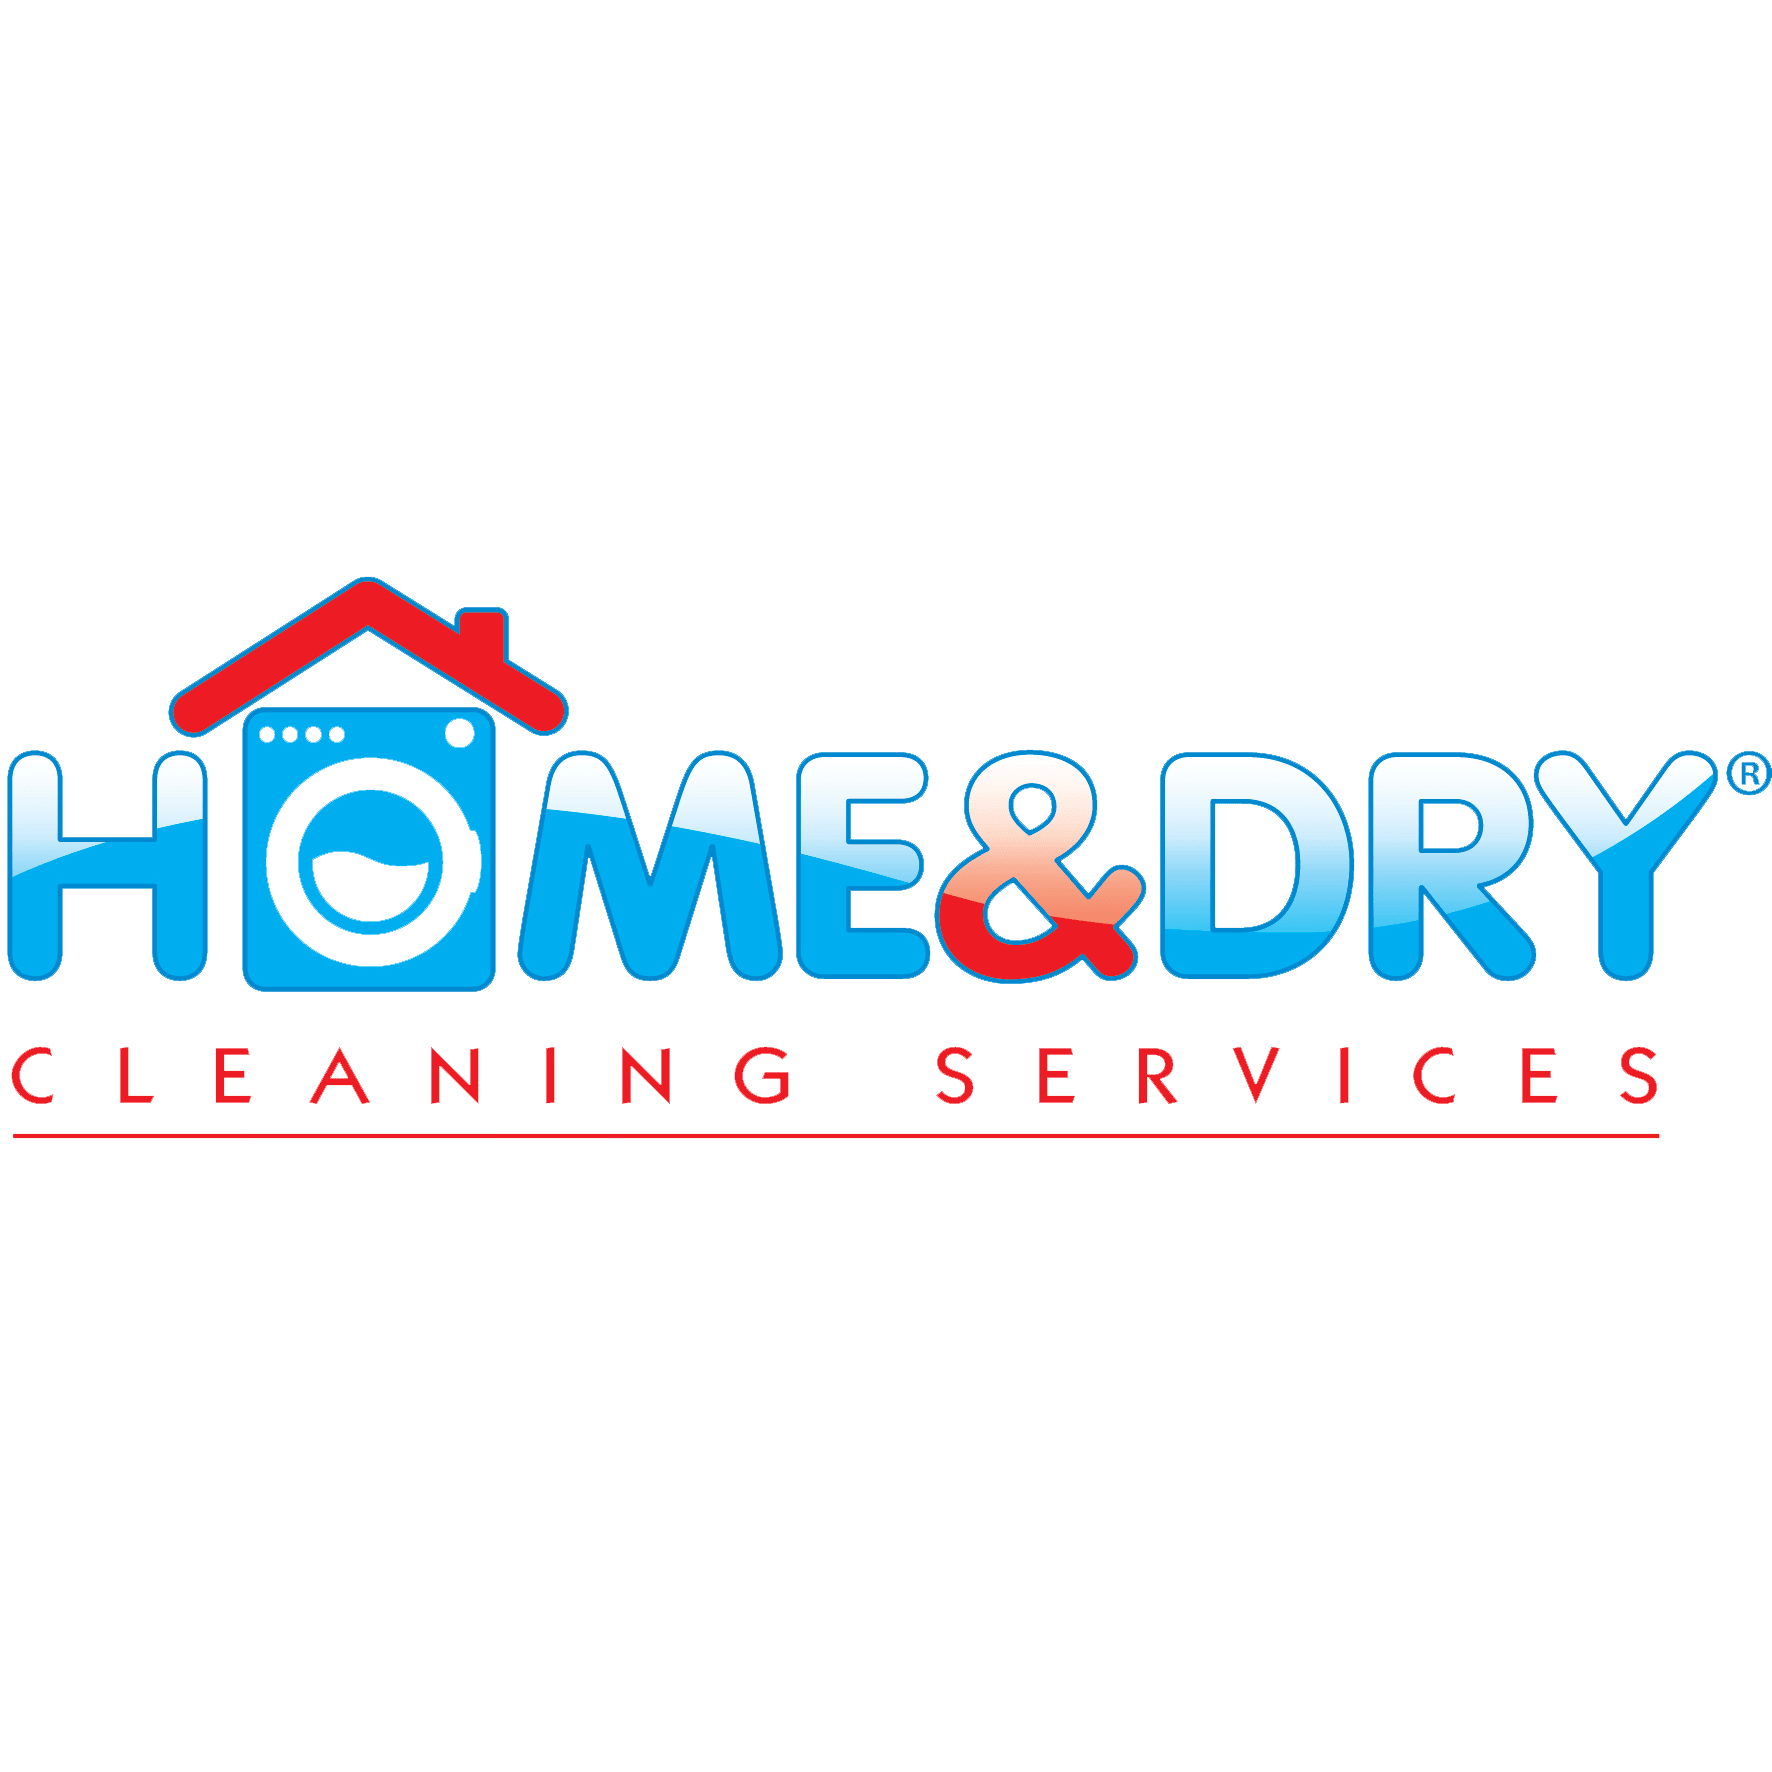 Home & Dry Cleaning & Laundry Services